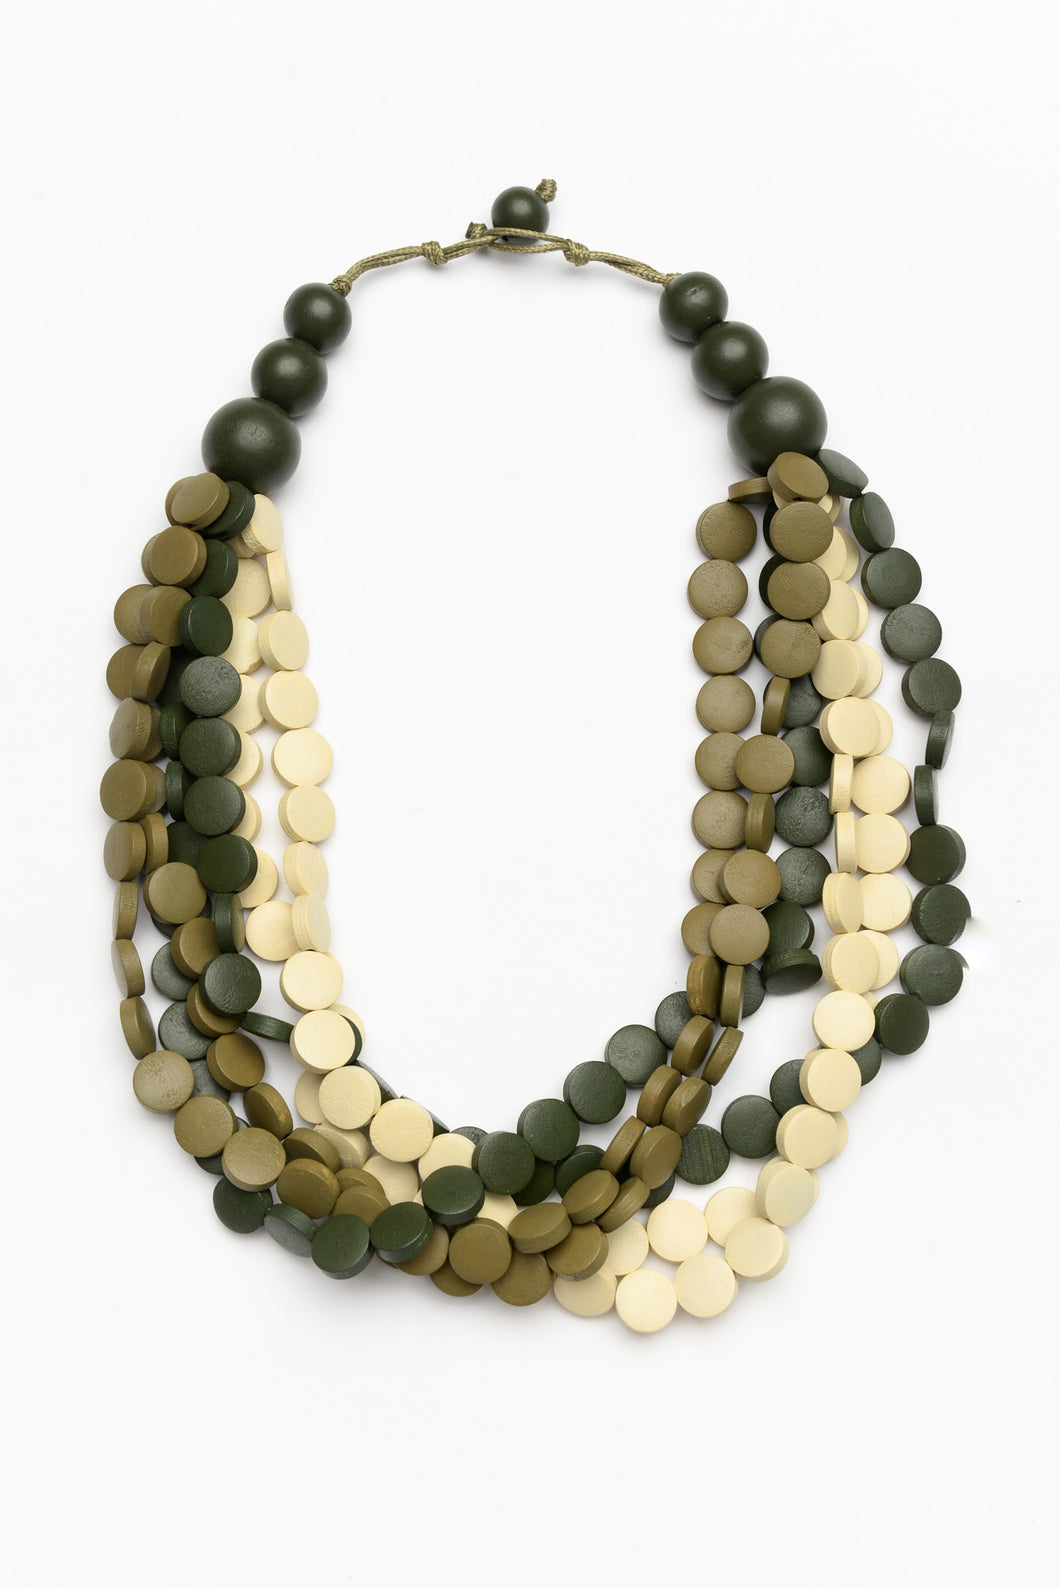 Freckles Green Beaded Necklace